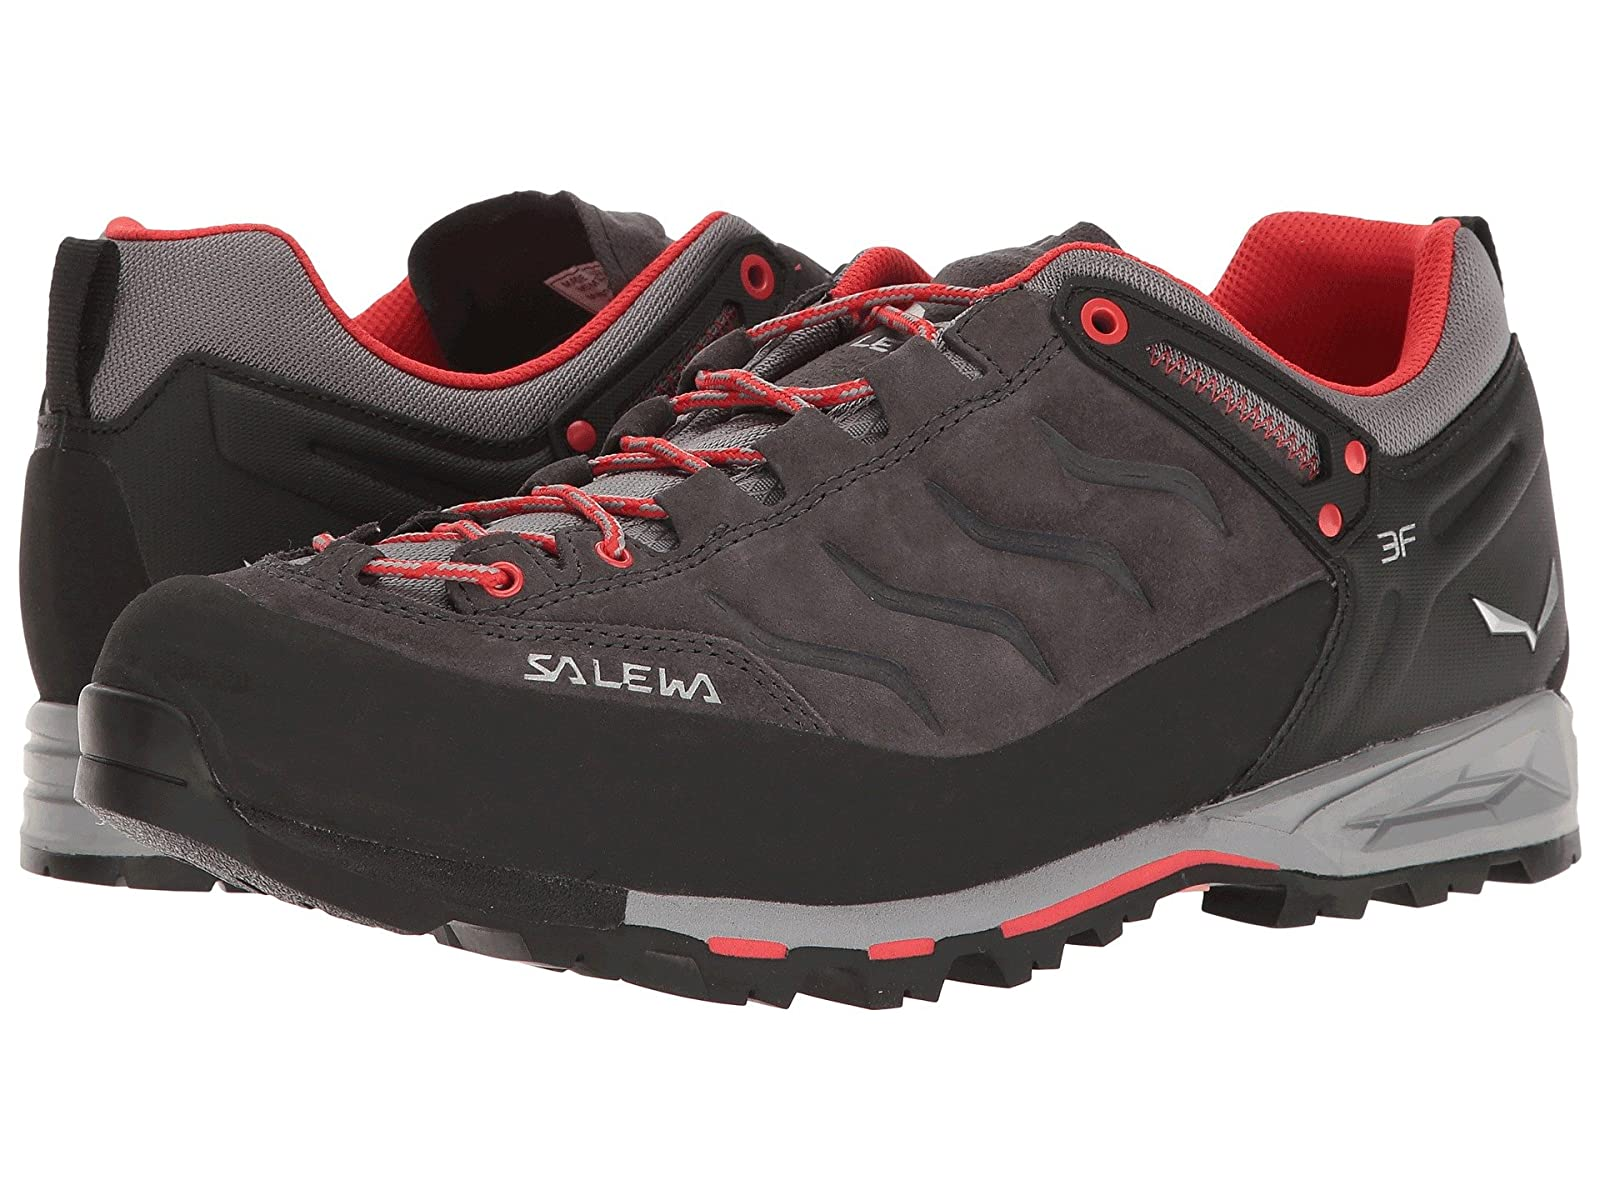 SALEWA Mountain TrainerAtmospheric grades have affordable shoes